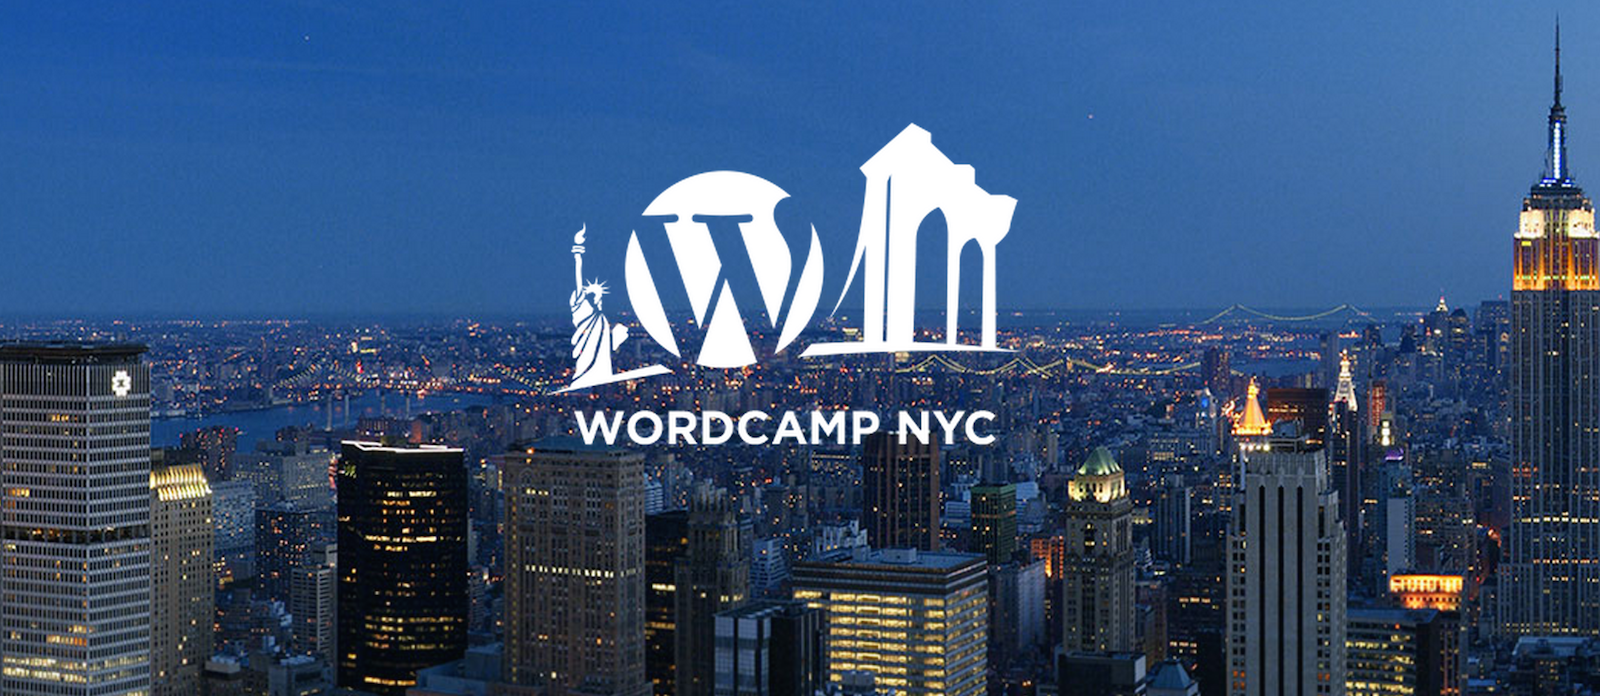 wordcamp-nyc